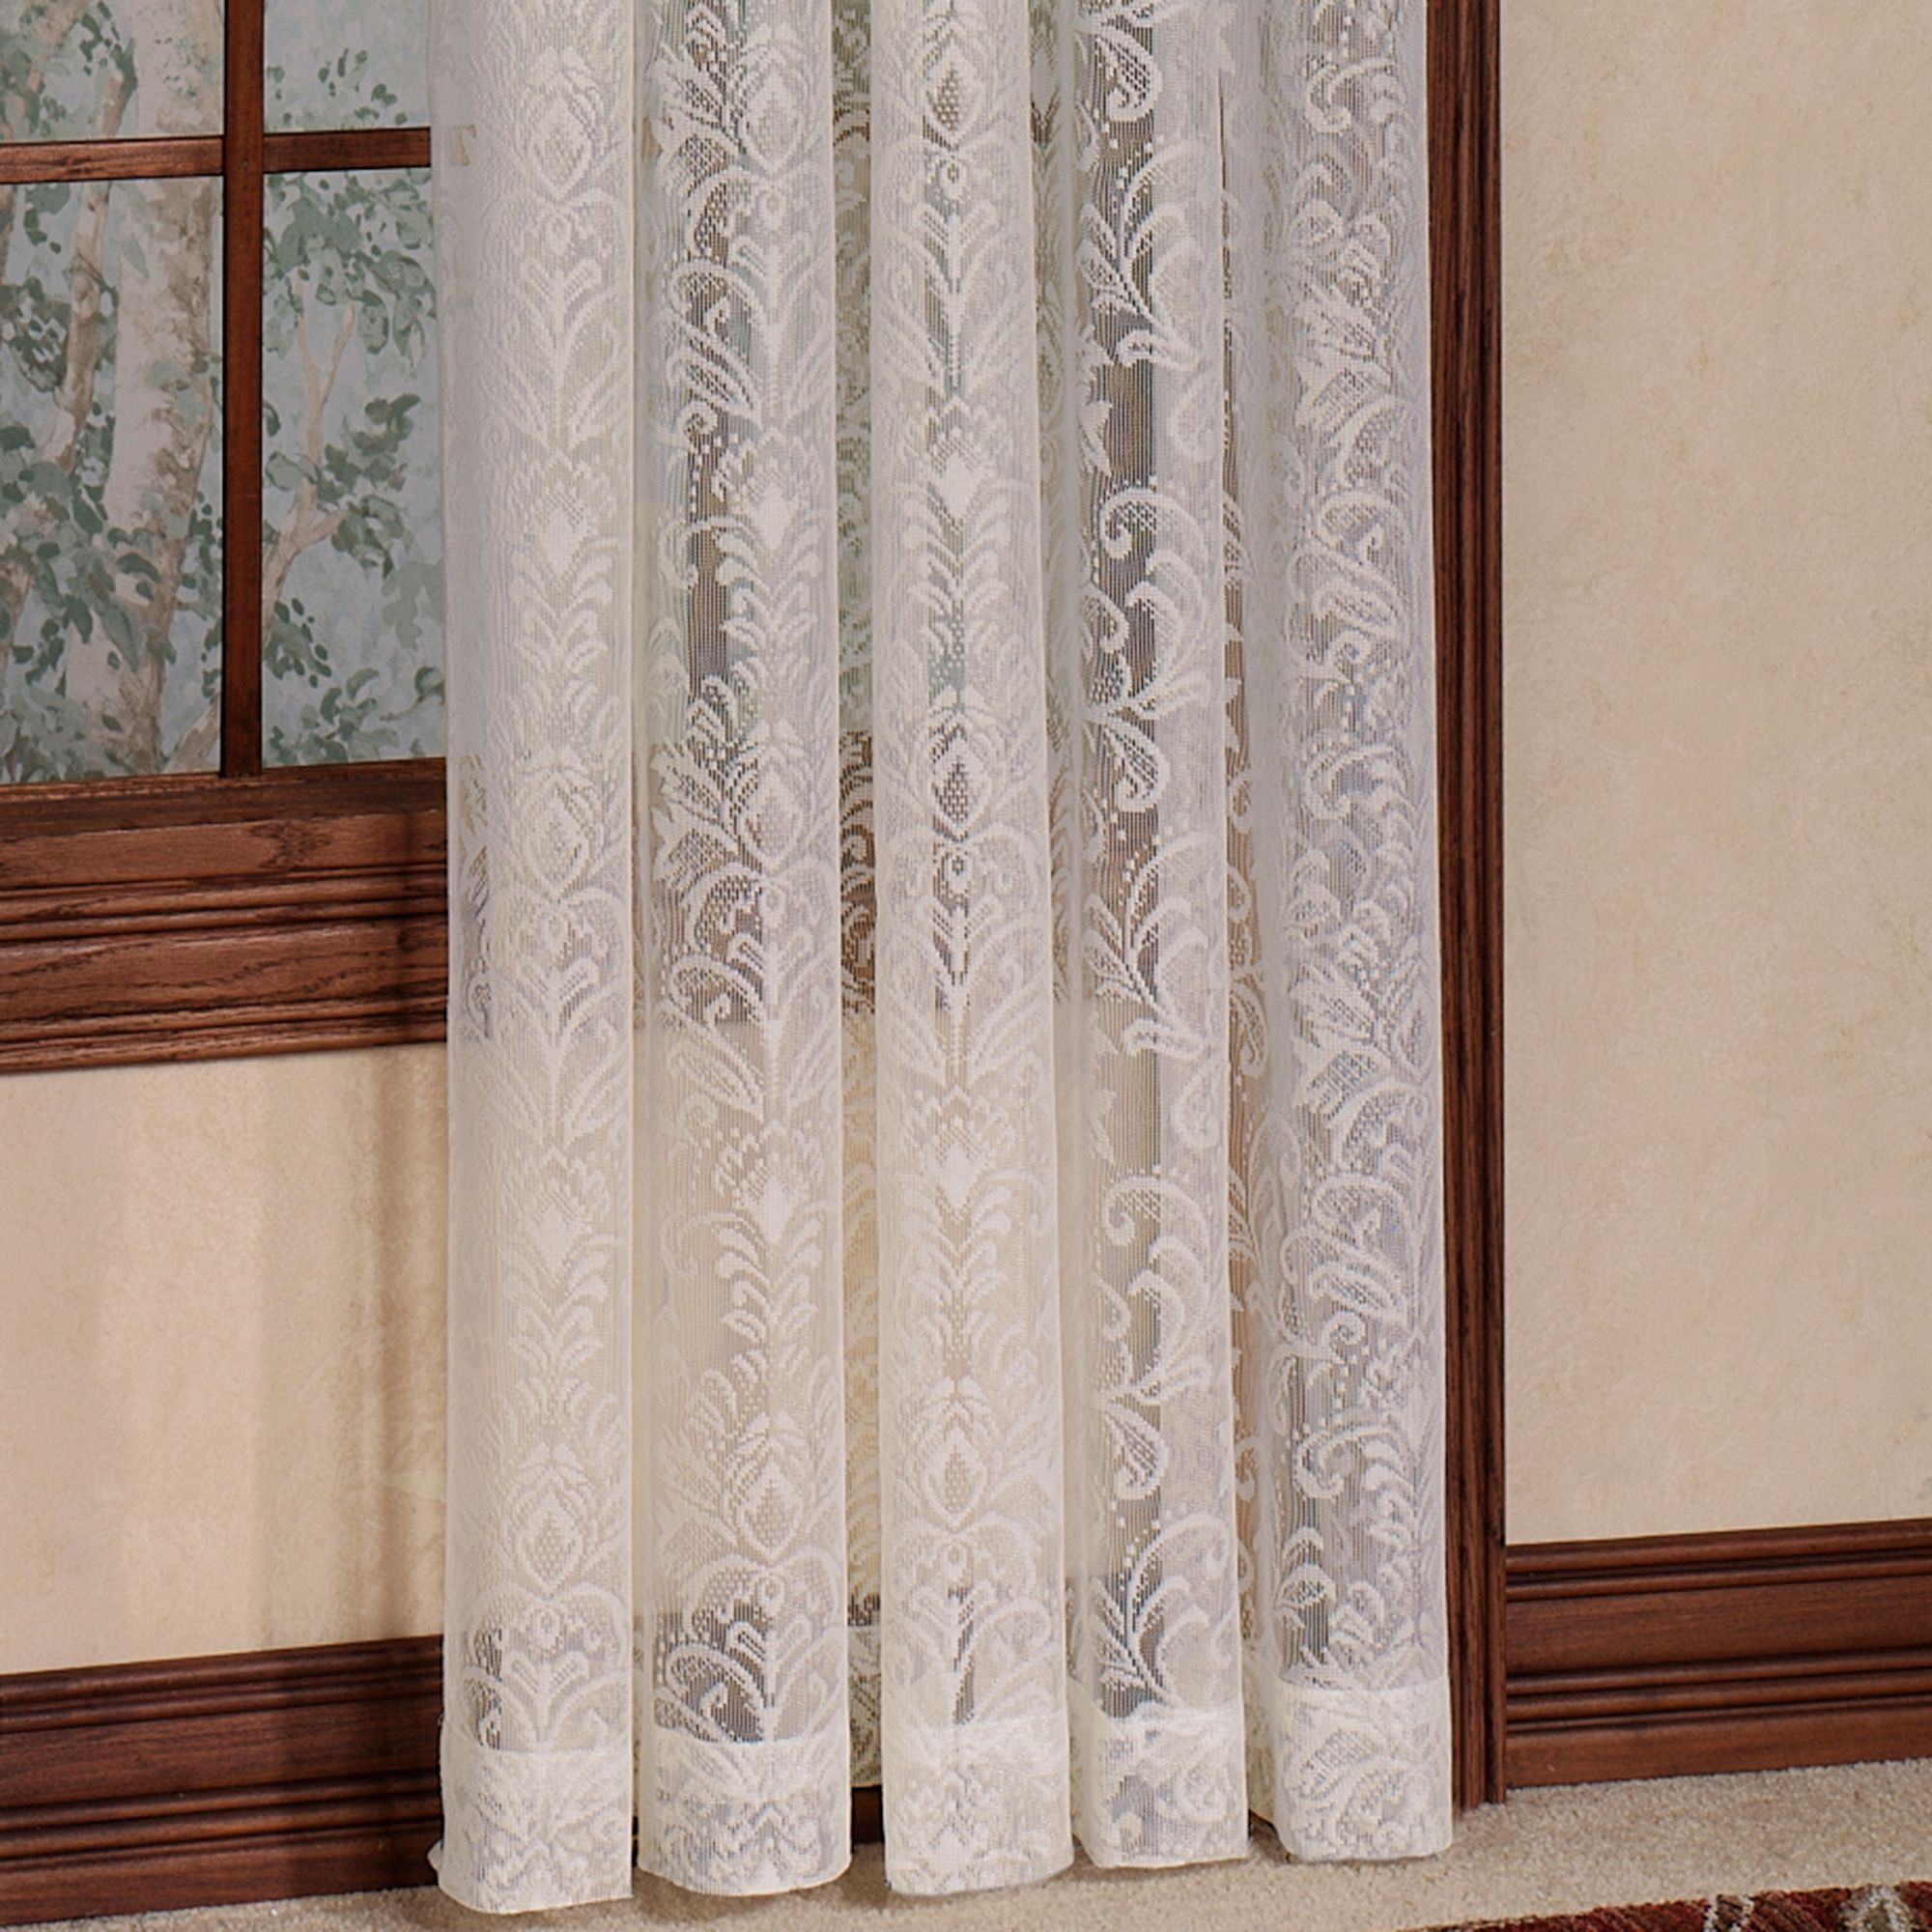 lace curtains mia lace curtain panel 56 x 84 MAURKNY